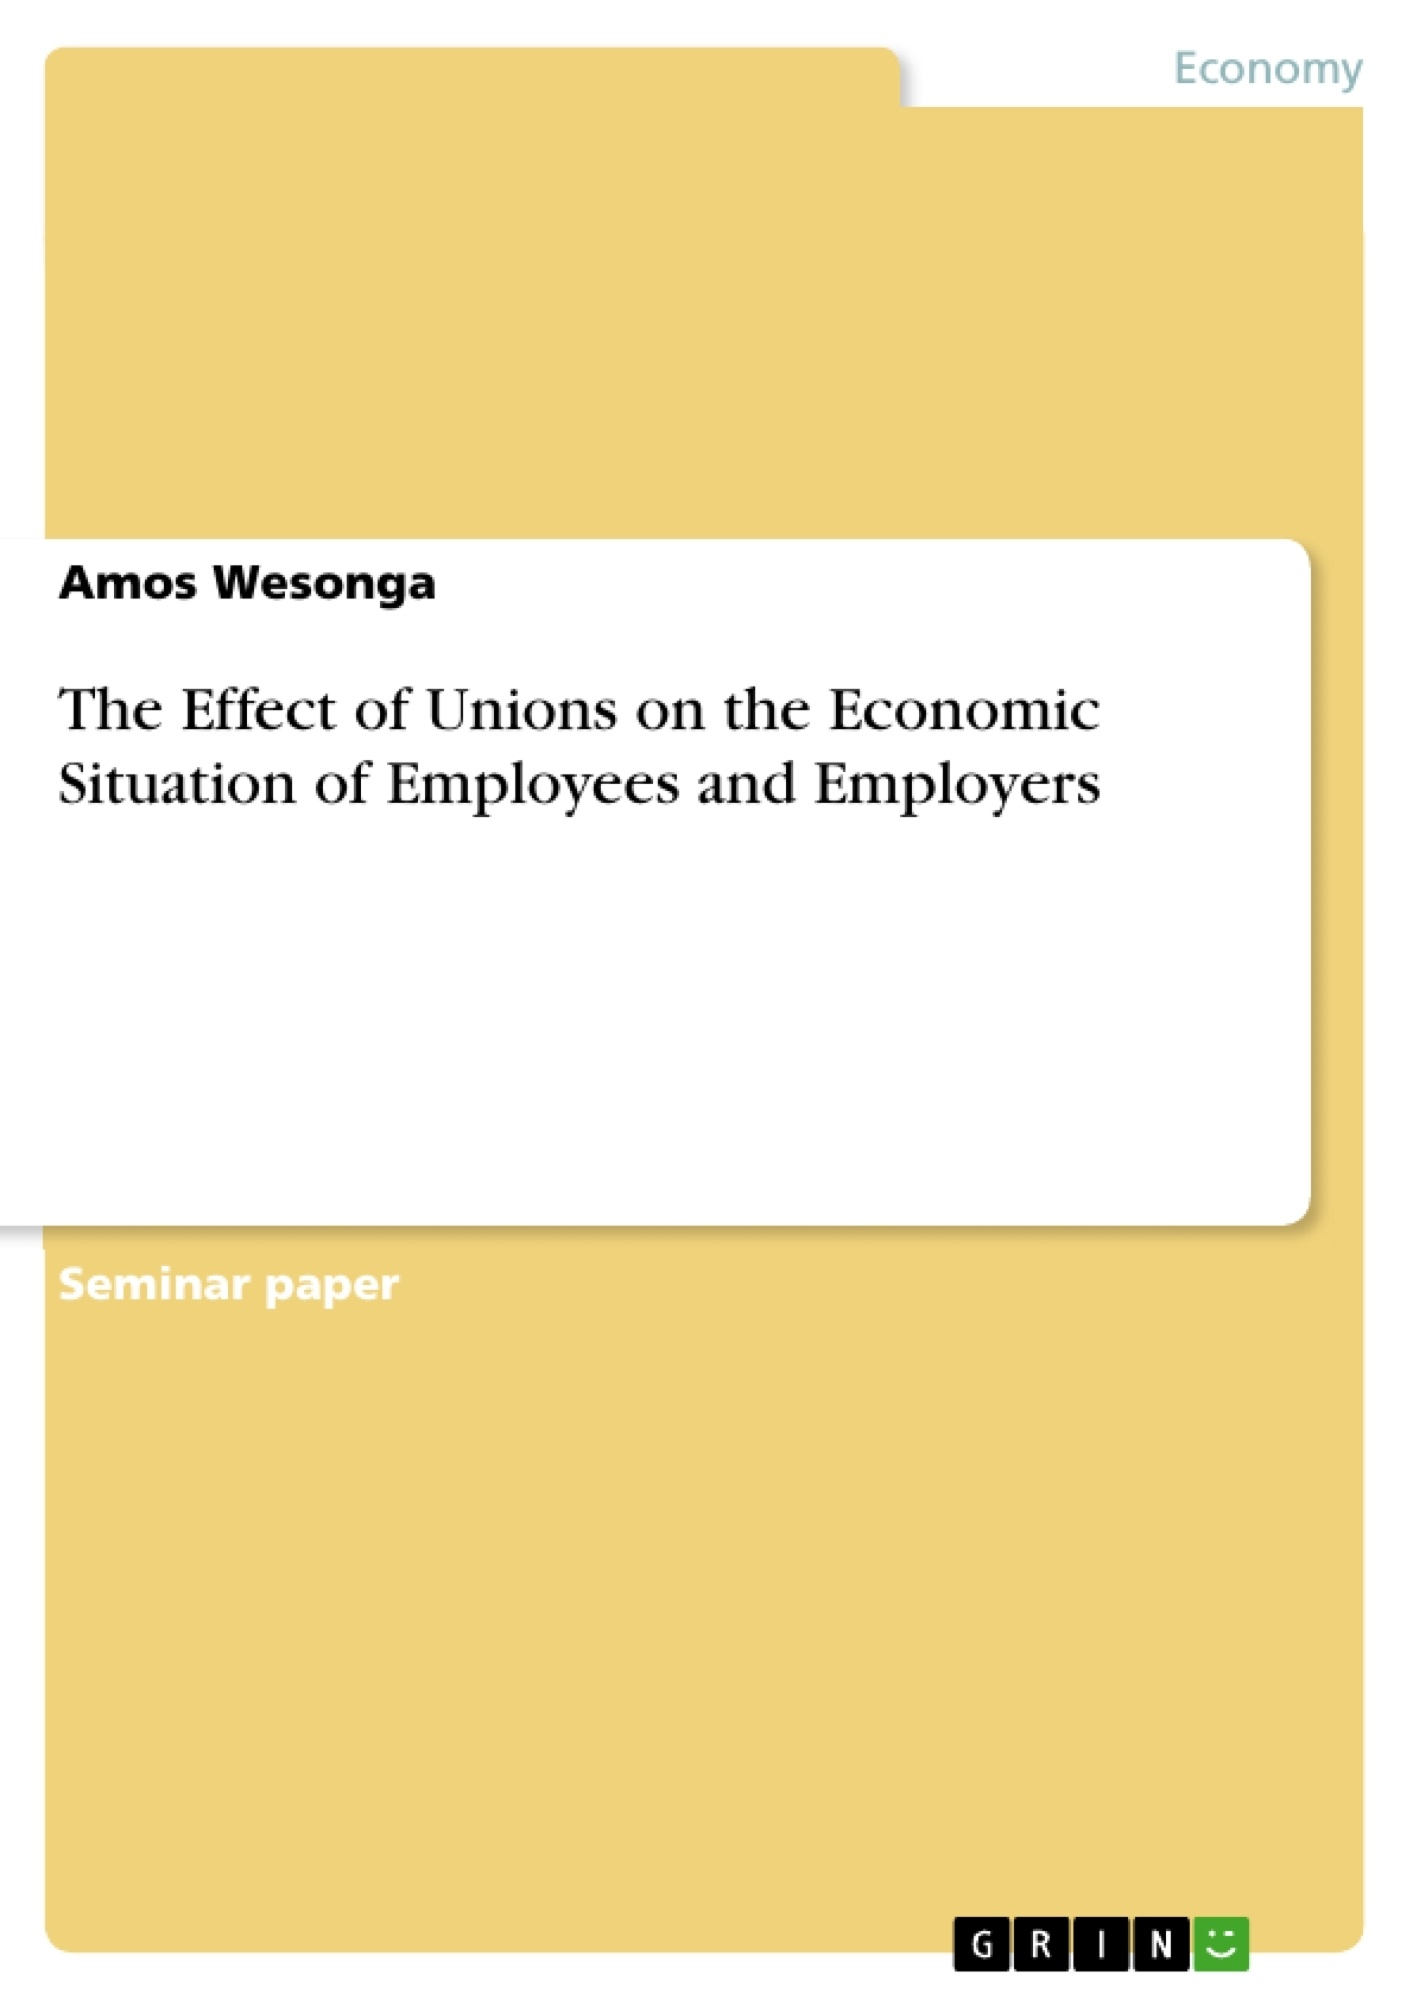 Title: The Effect of Unions on the Economic Situation of Employees and Employers